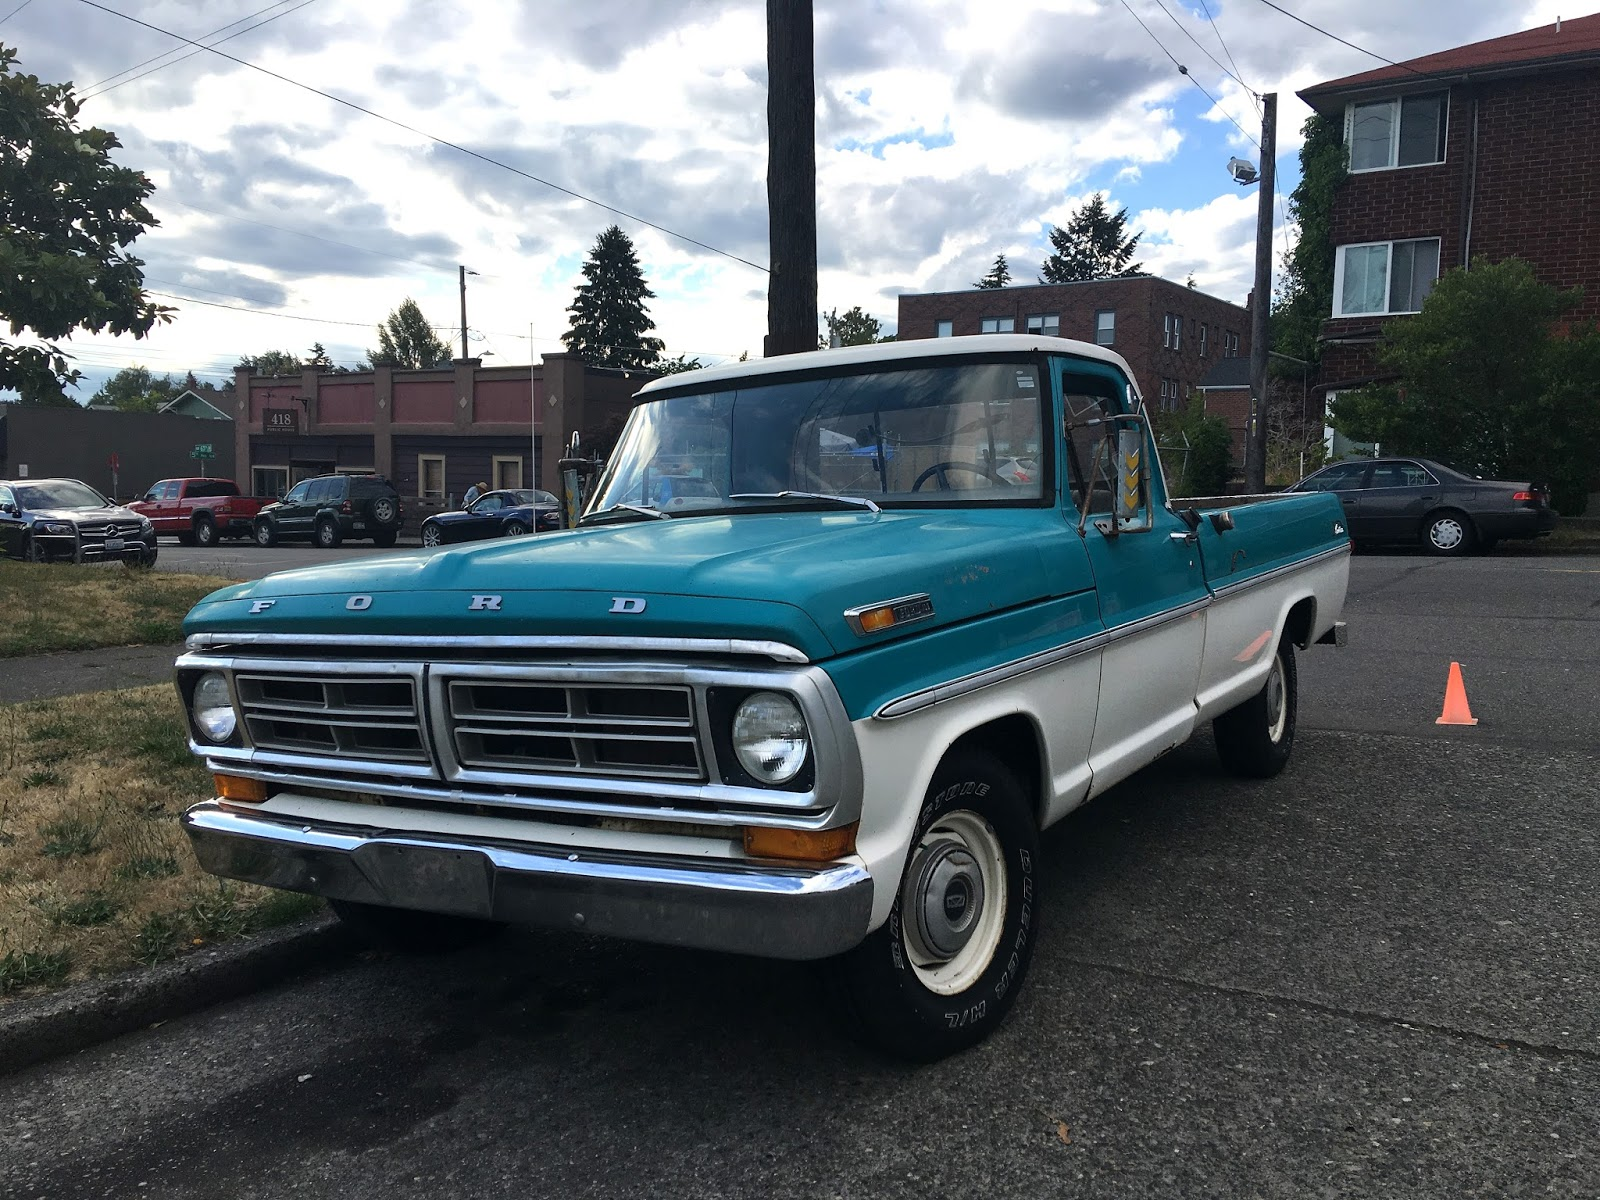 3wire Dist Wiring Help Needed 239914 likewise Zm9yZC1mMTAwLTE5NzItYnk together with 1972 Chevrolet C20 34 Ton Longbed 4x4 besides Crate Motor Guide 1973 2013 Gmcchevy Trucks moreover File Chevrolet C 10 pickup. on 1972 gmc sierra grande pickup